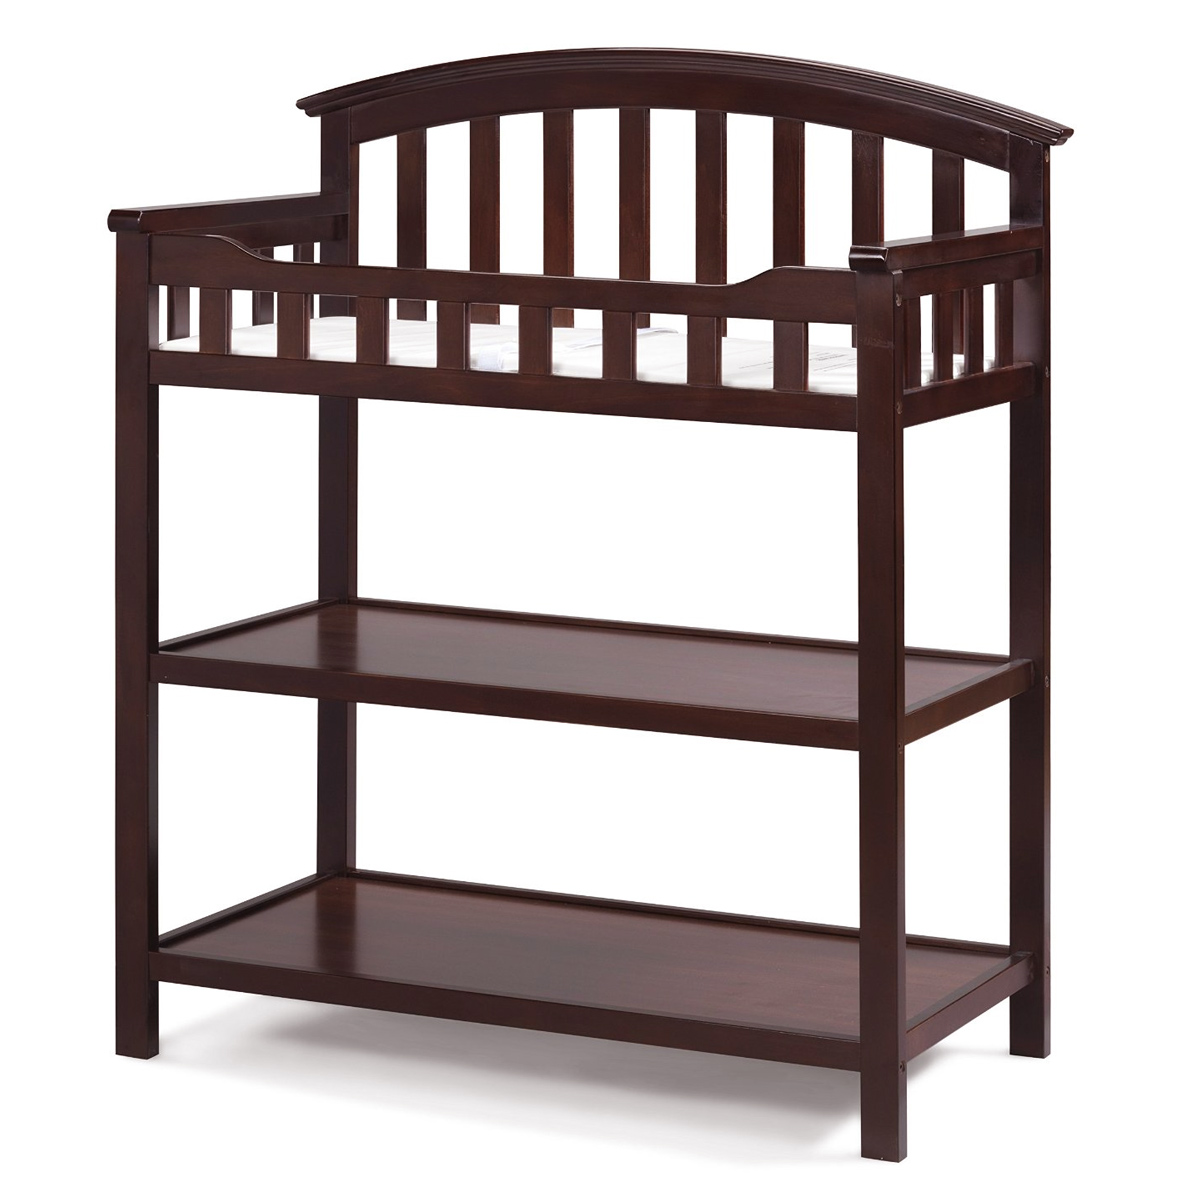 Graco Cribs Changing Table In Cherry